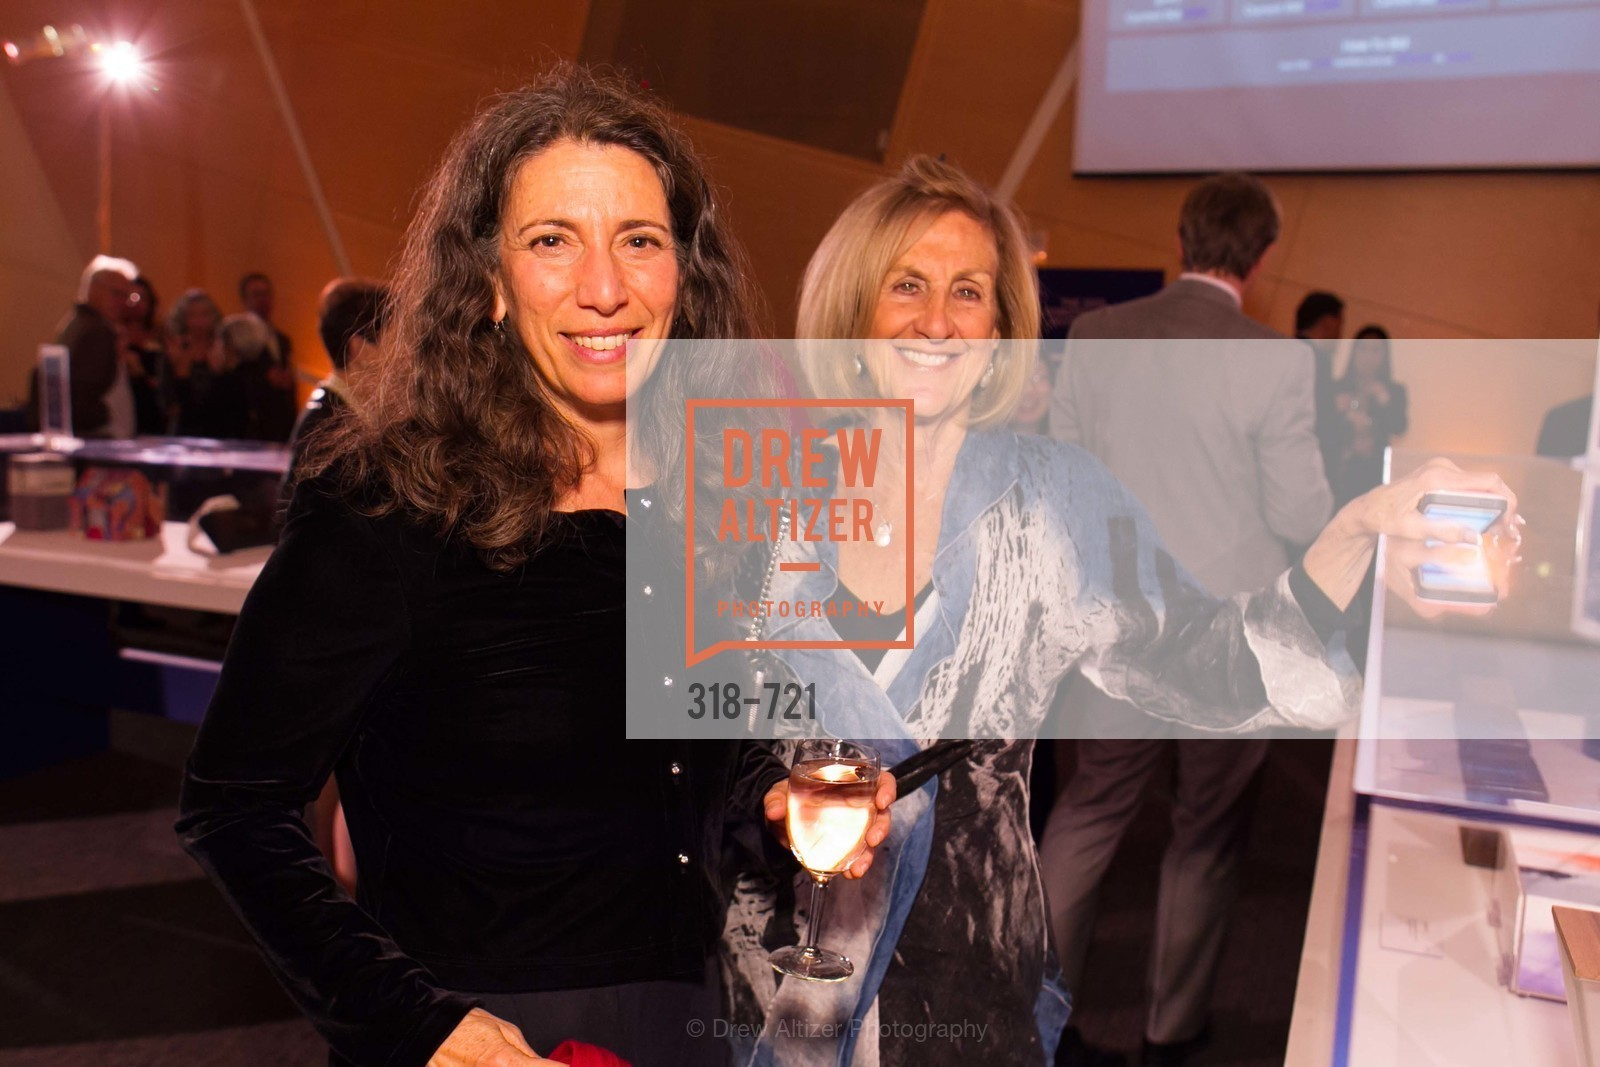 Beth Grossman, Susan Libitzky, The 2015 Dorothy Saxe Invitational Celebration at the JEWISH MUSEUM, US, May 12th, 2015,Drew Altizer, Drew Altizer Photography, full-service agency, private events, San Francisco photographer, photographer california